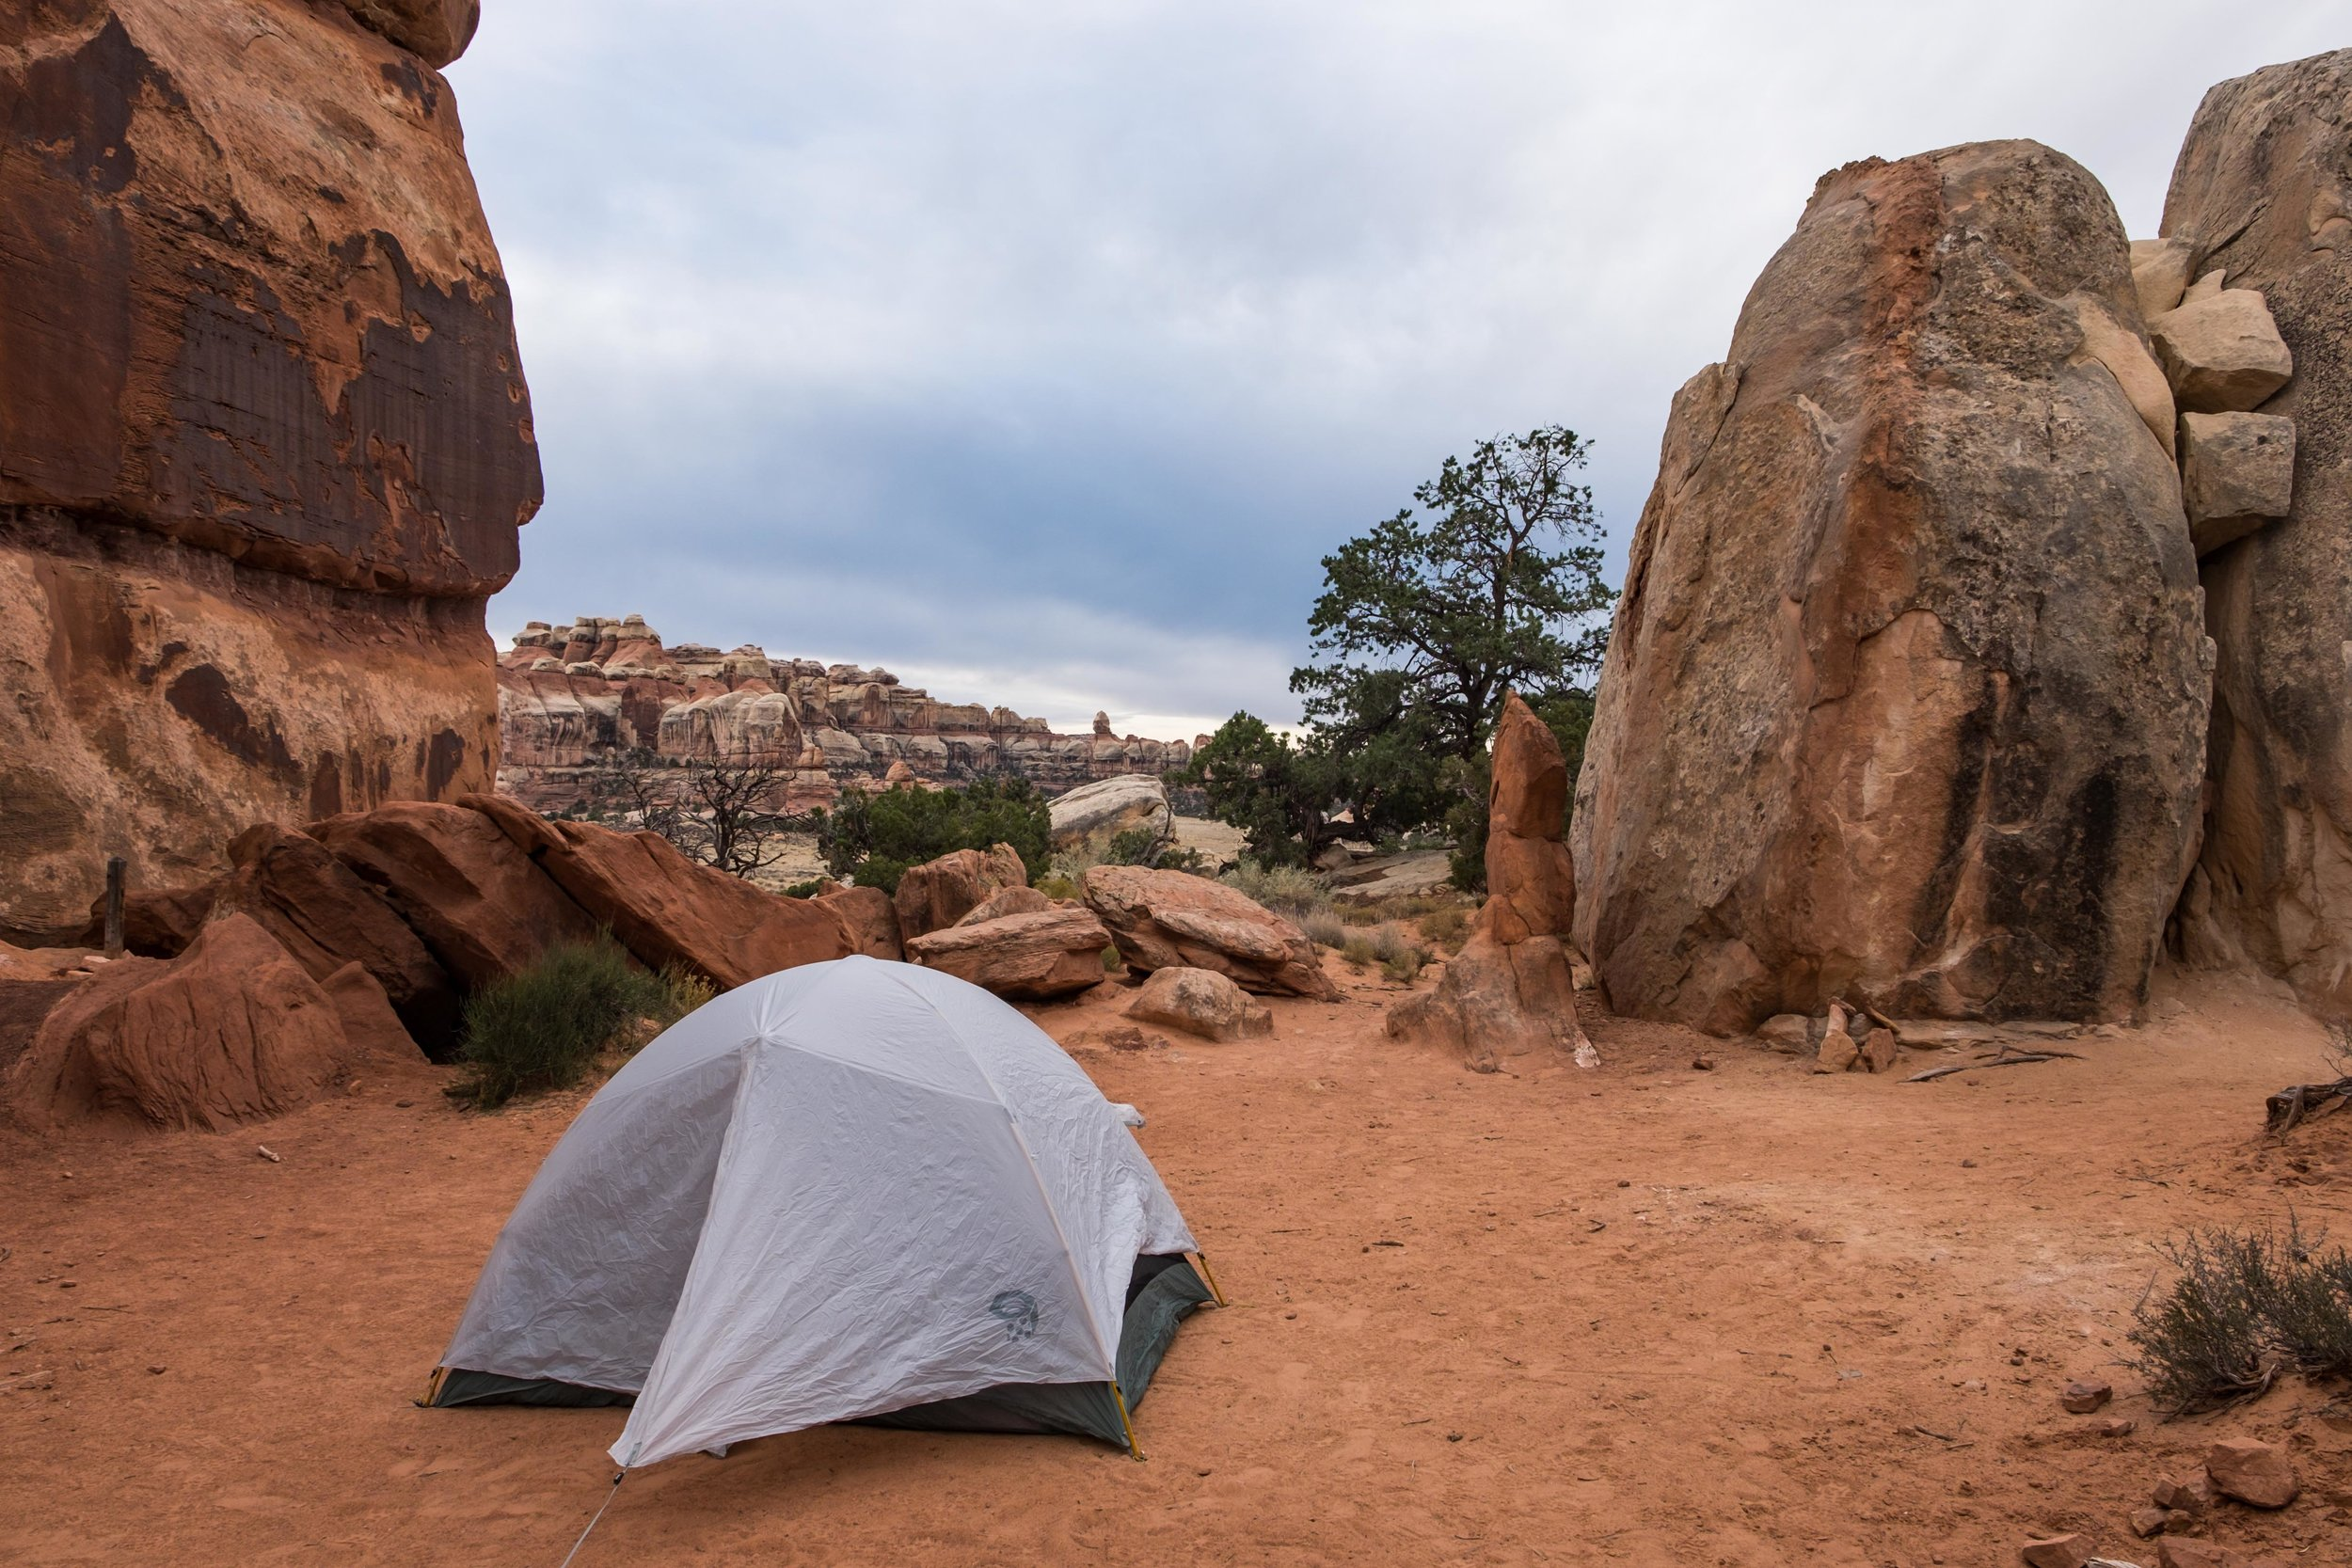 CP1 (Chesler Park 1) is among our favorite campsites of the year, with stunning views in all directions that are completely unique to one another.